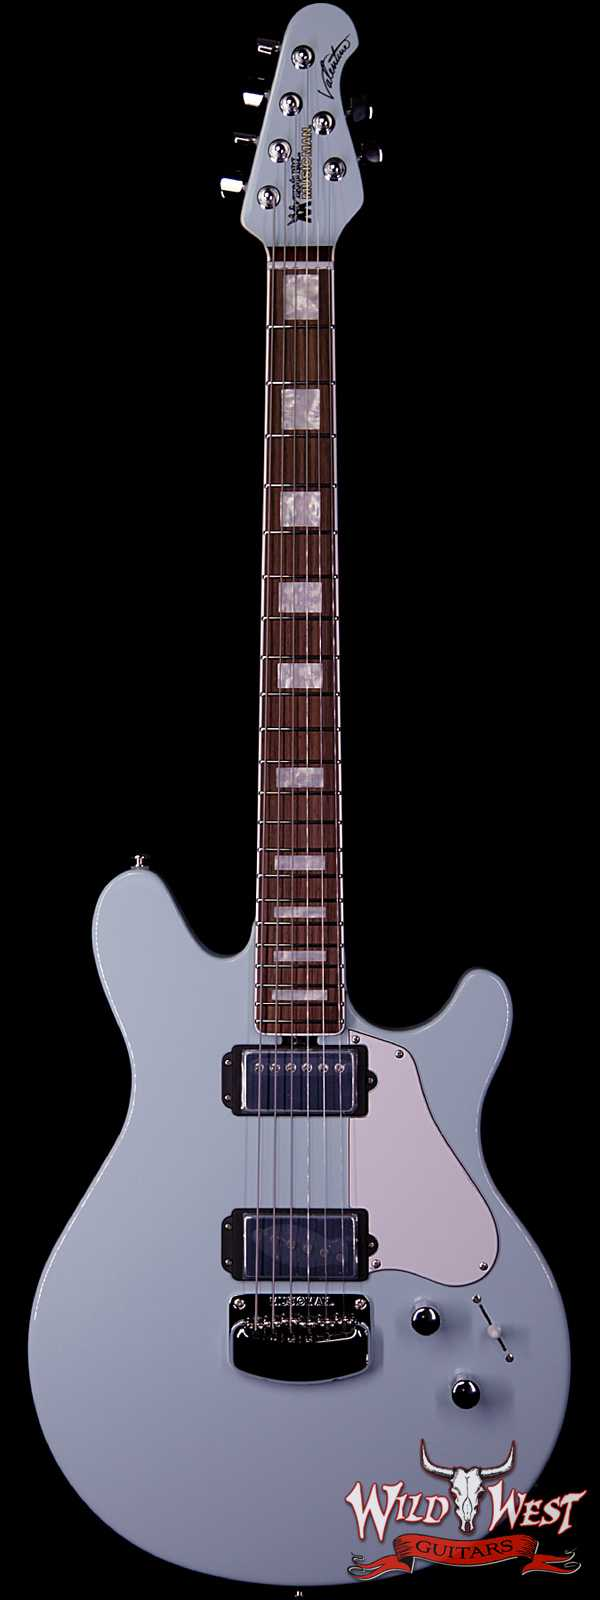 Ernie Ball Music Man BFR Limited Edition #54 of 68 Valentine Rosewood Board Baby Blue Signed by James Valentine